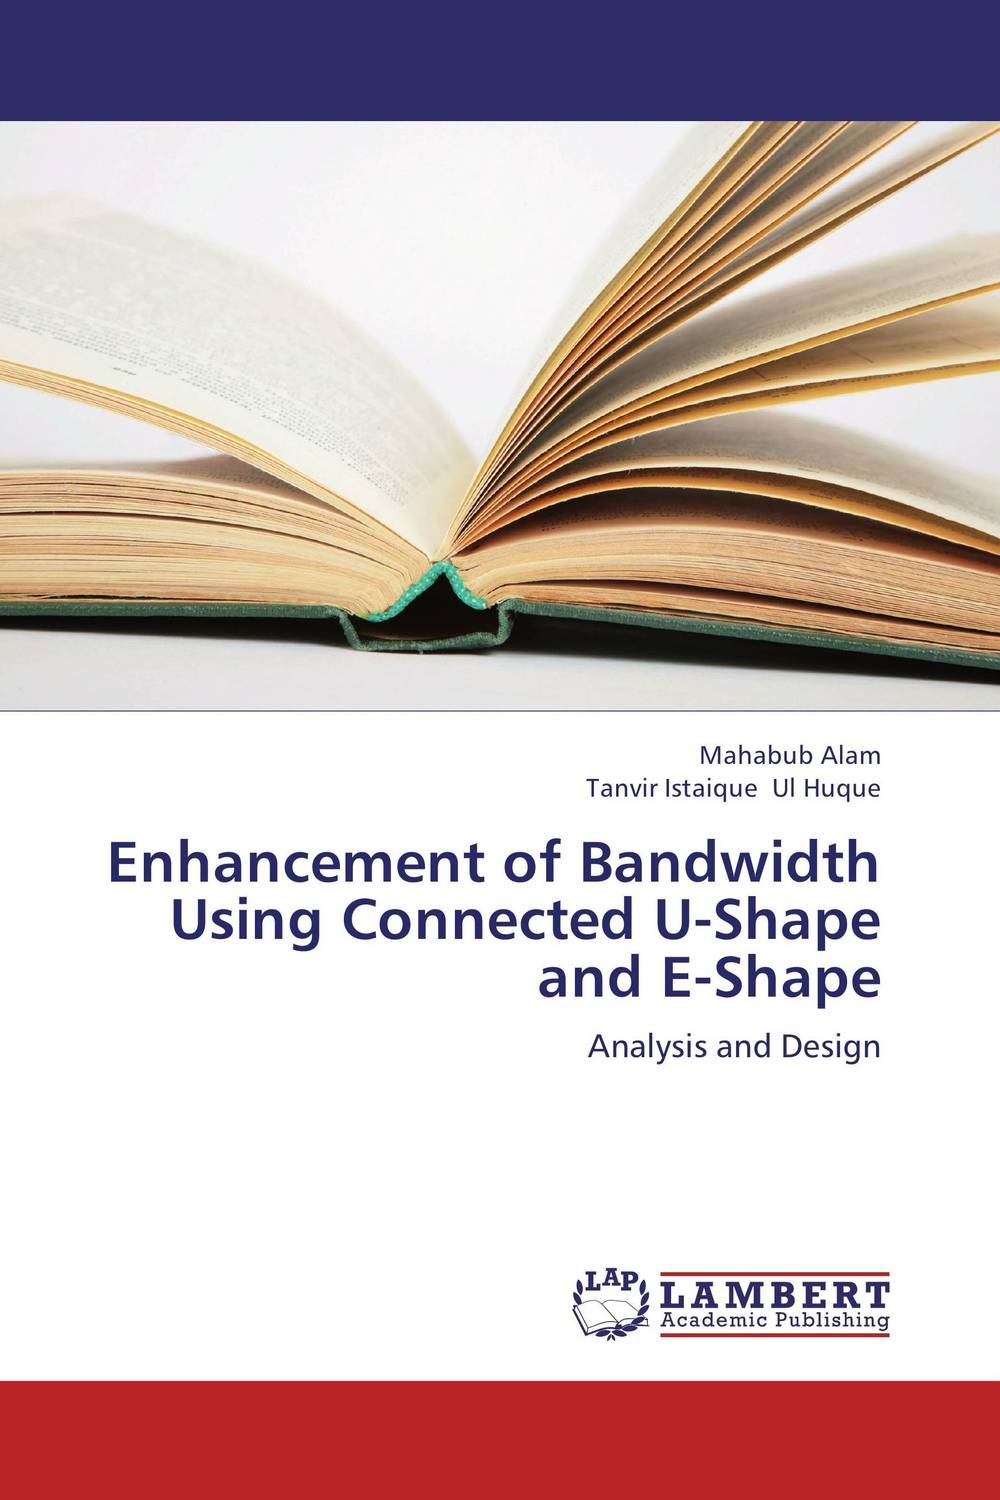 Enhancement of Bandwidth Using Connected U-Shape and E-Shape maxitoys подушка с ручками